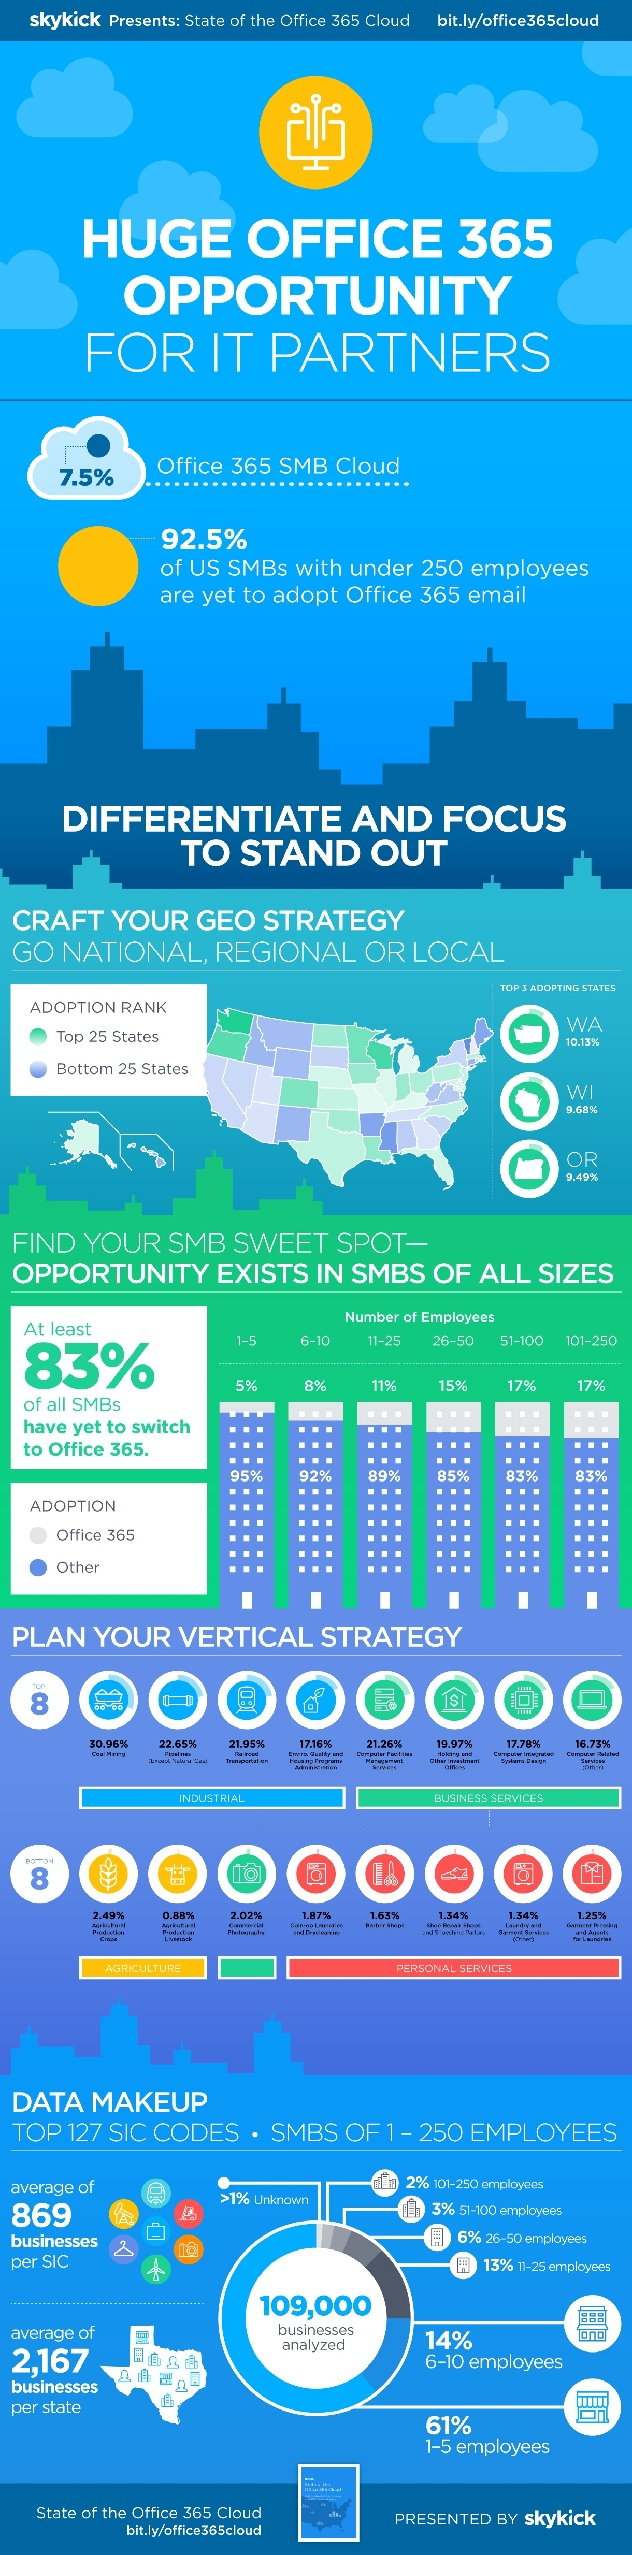 SkyKick_Office365_Infographic